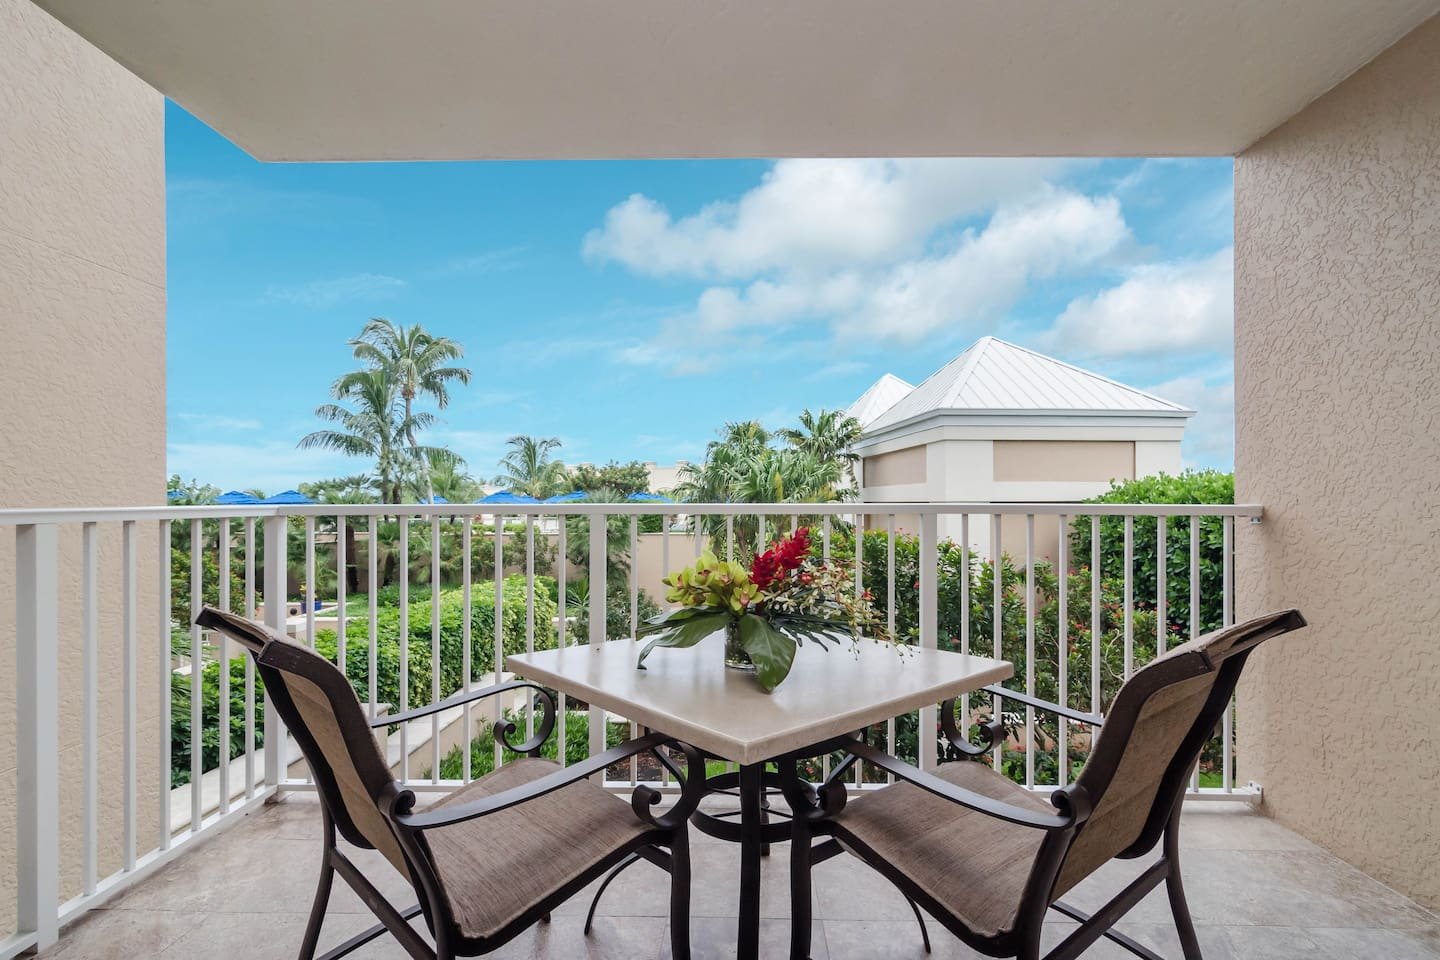 Private balcony overlooking pool and garden terrace